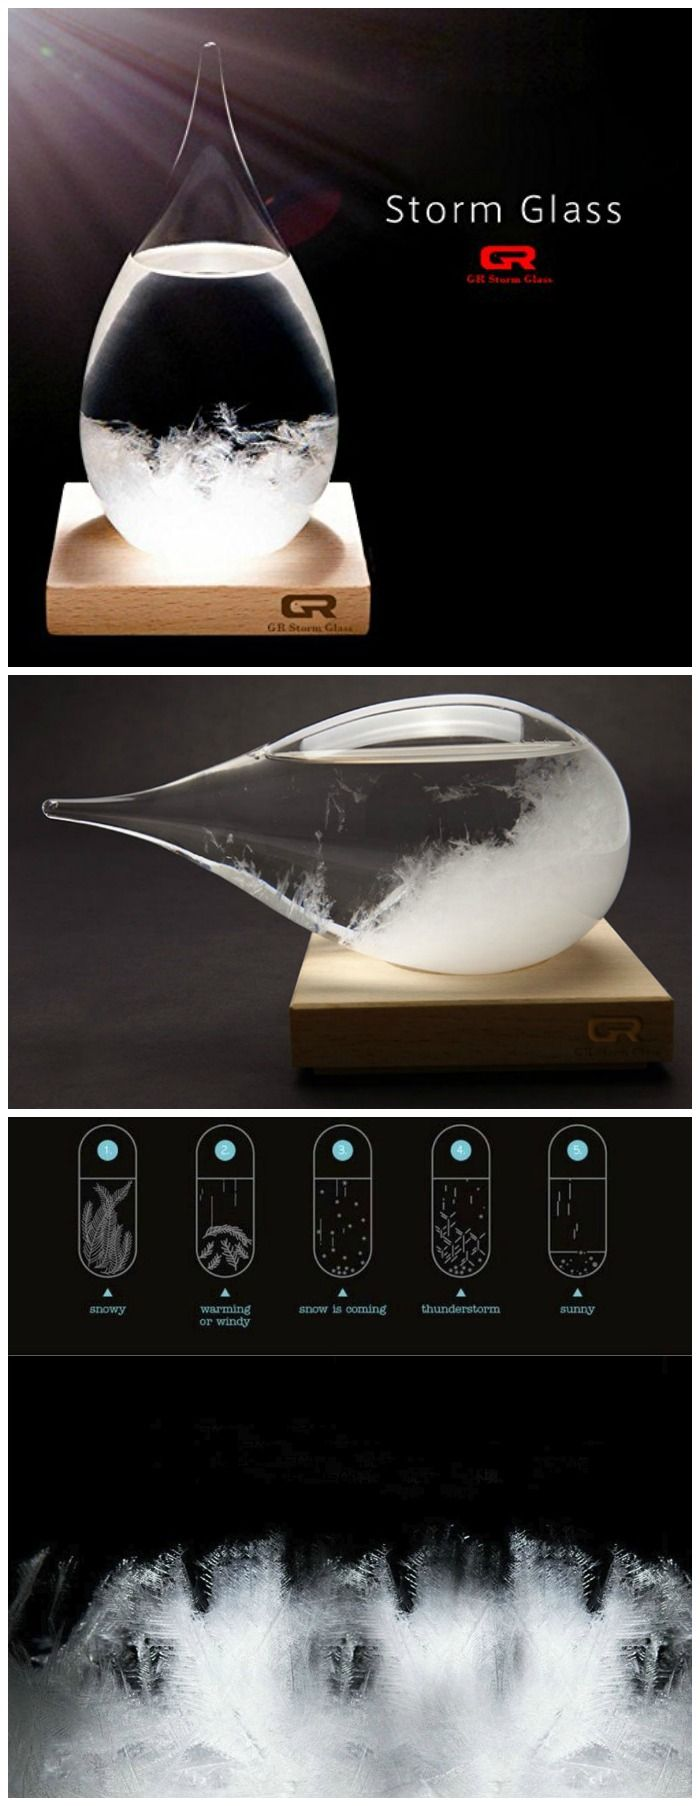 The cool new and modern Storm Glass is the natural way to forecast the weather. #affiliate